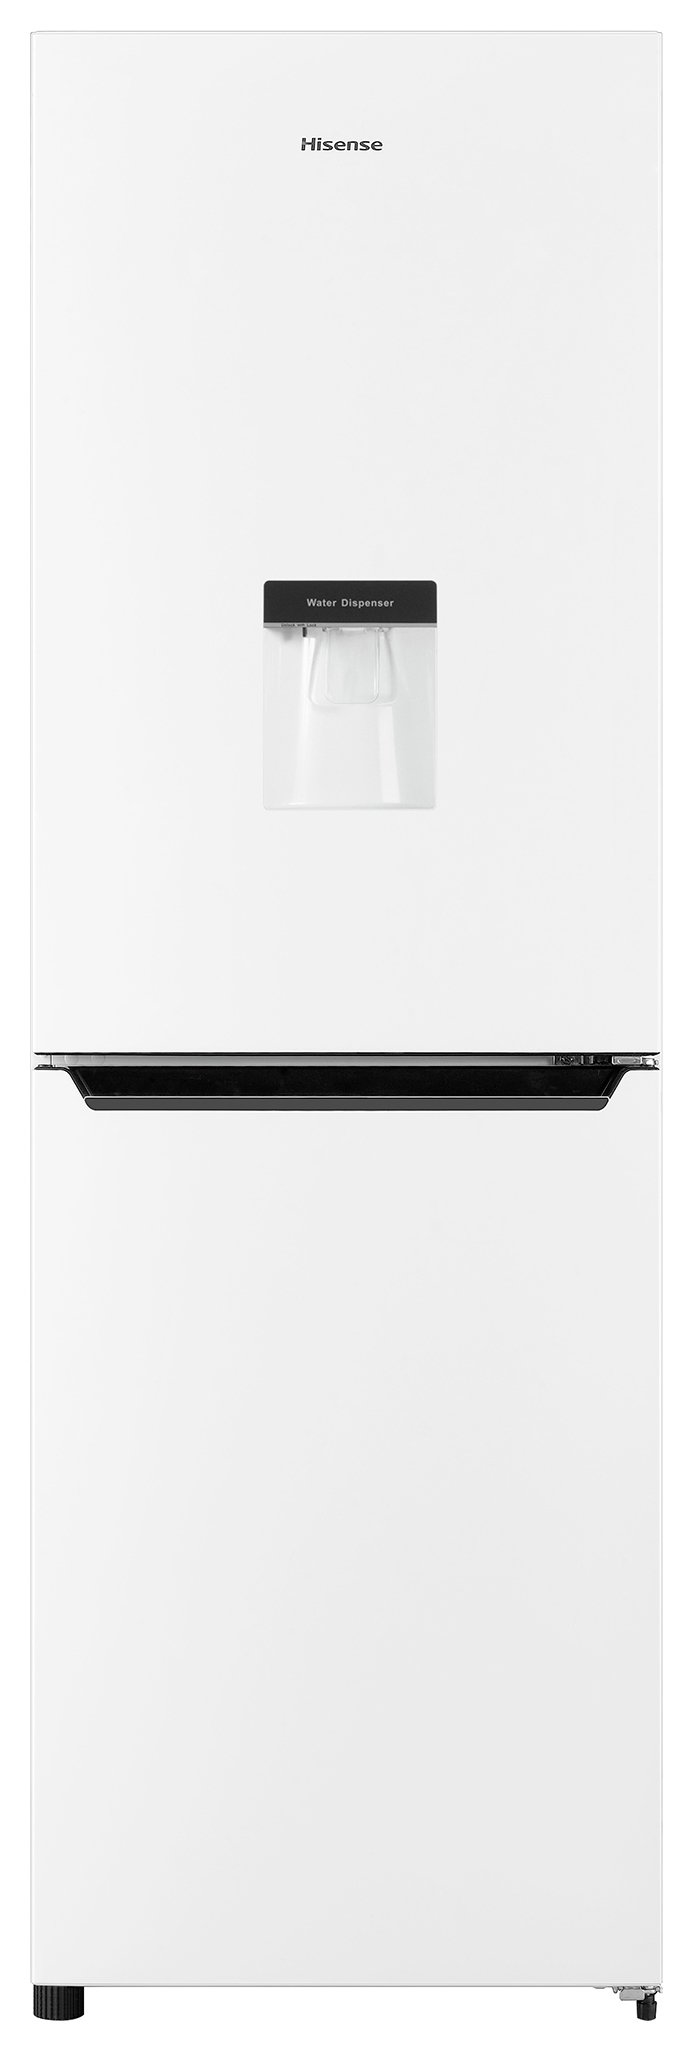 Hisense RB381N4WW1 Frost Free Fridge Freezer – White